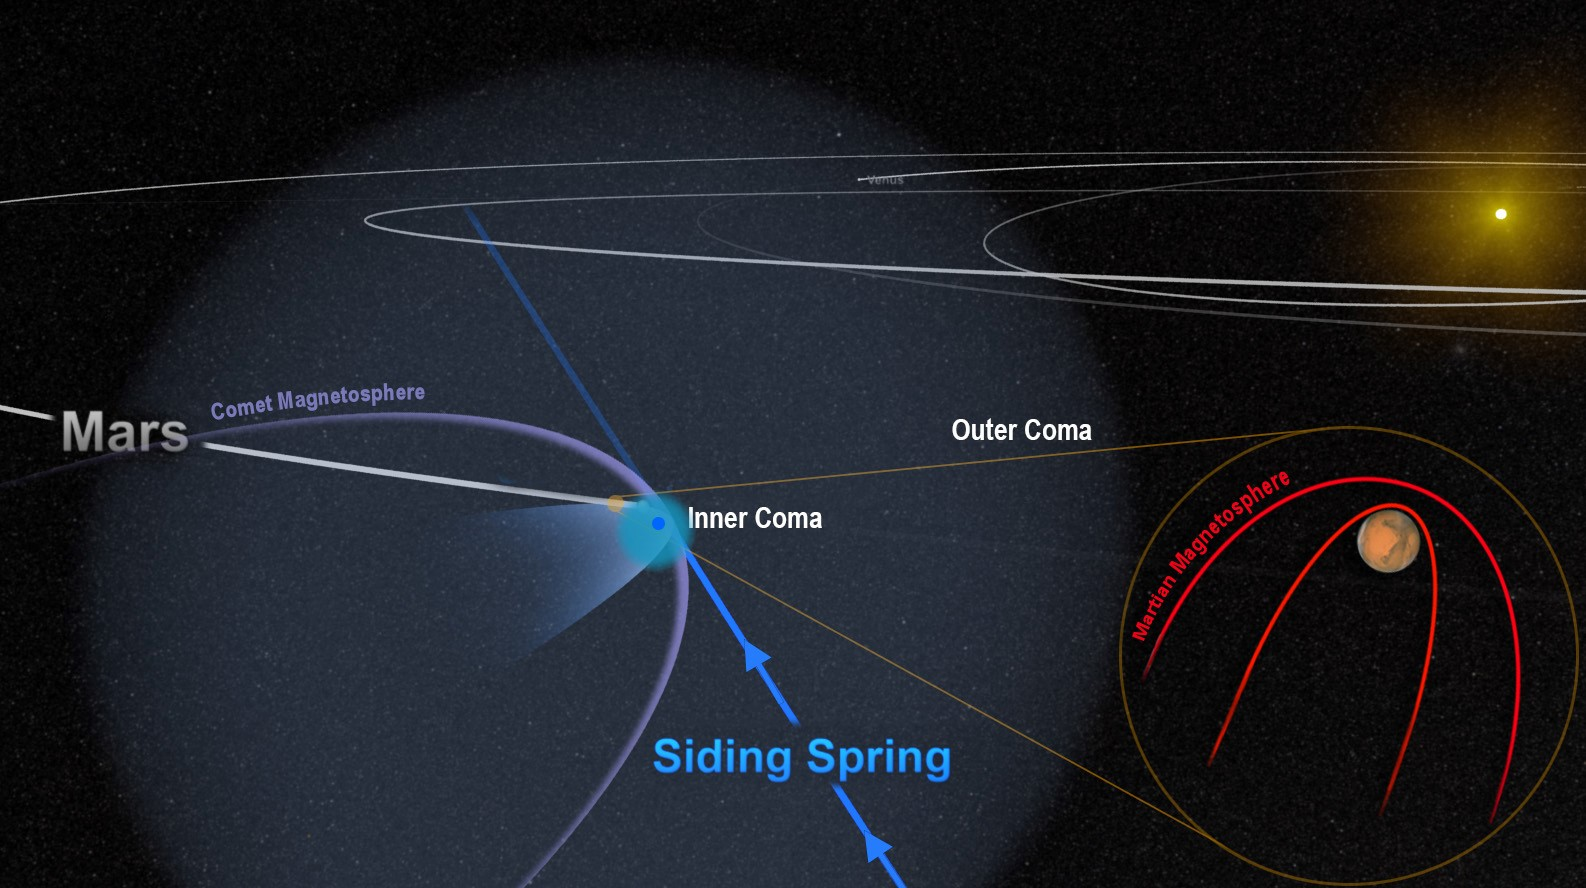 The close encounter between comet Siding Spring and Mars flooded the planet with an invisible tide of charged particles from the comet's coma. The dense inner coma reached the surface of the planet, or nearly so. The comet's powerful magnetic field temporarily merged with, and overwhelmed, the planet's weak field, as shown in this artist's depiction.